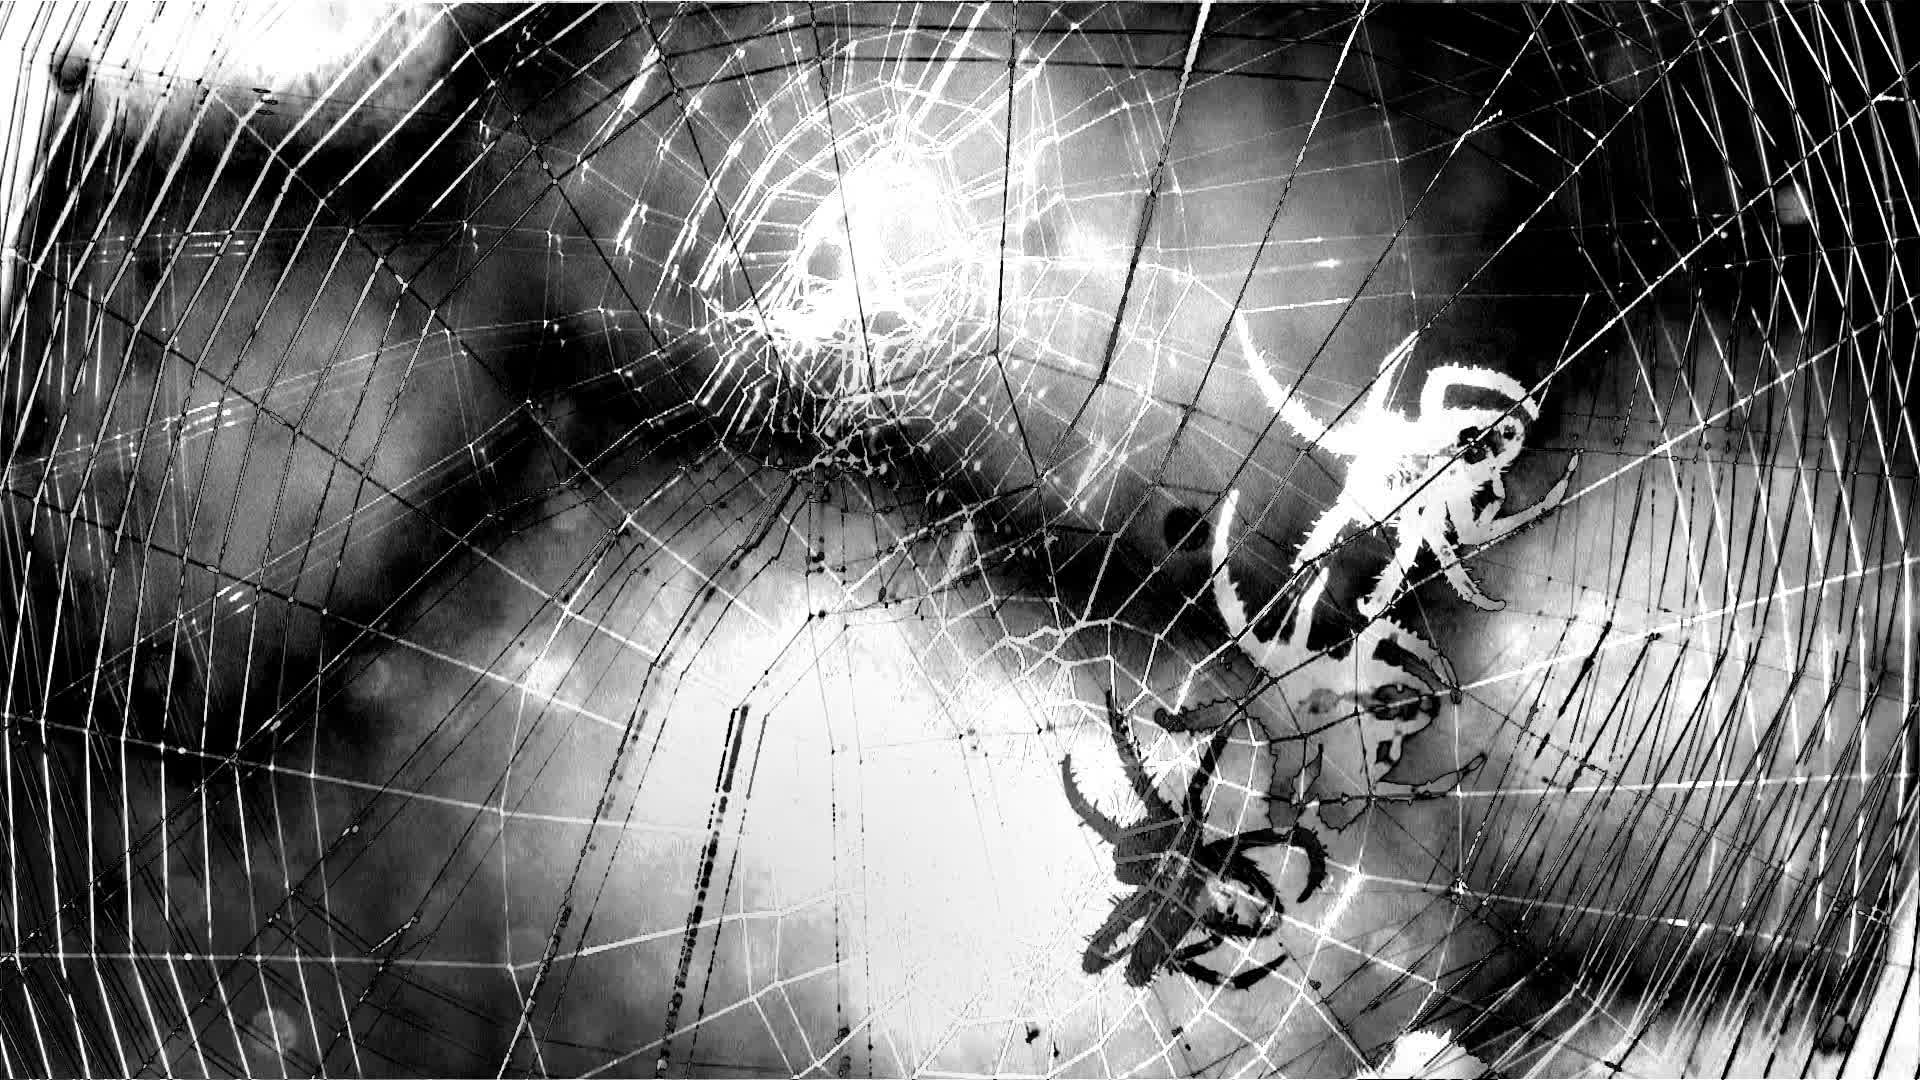 These spiders may soon abandon group life and become loners.